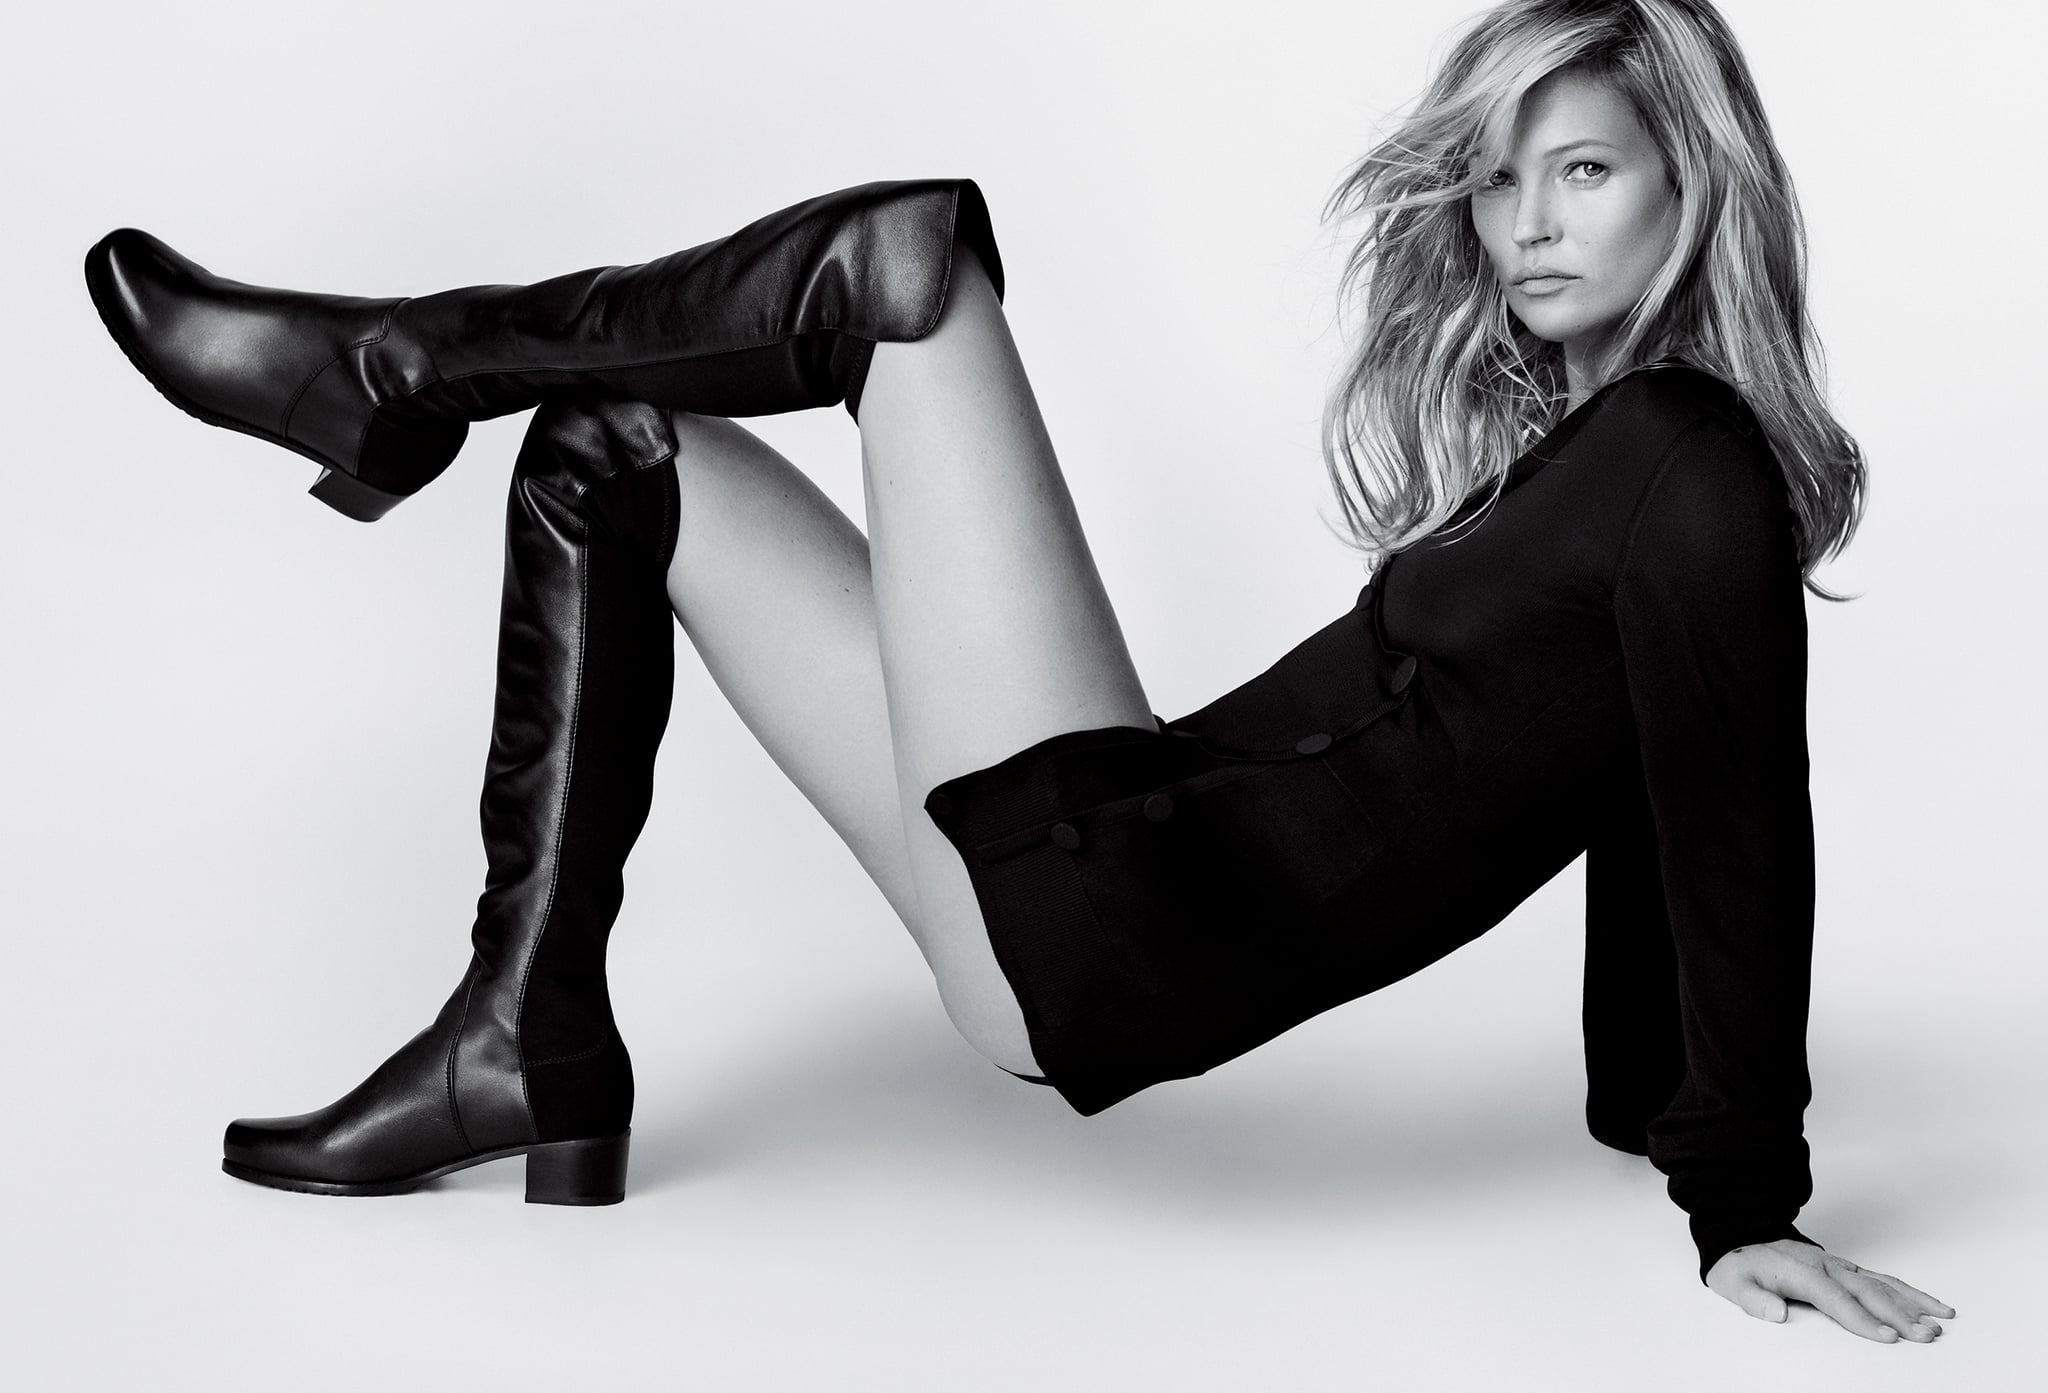 MORE MODELS: Kate Moss Celebrates Her 25th Anniversary on Magazine Cover